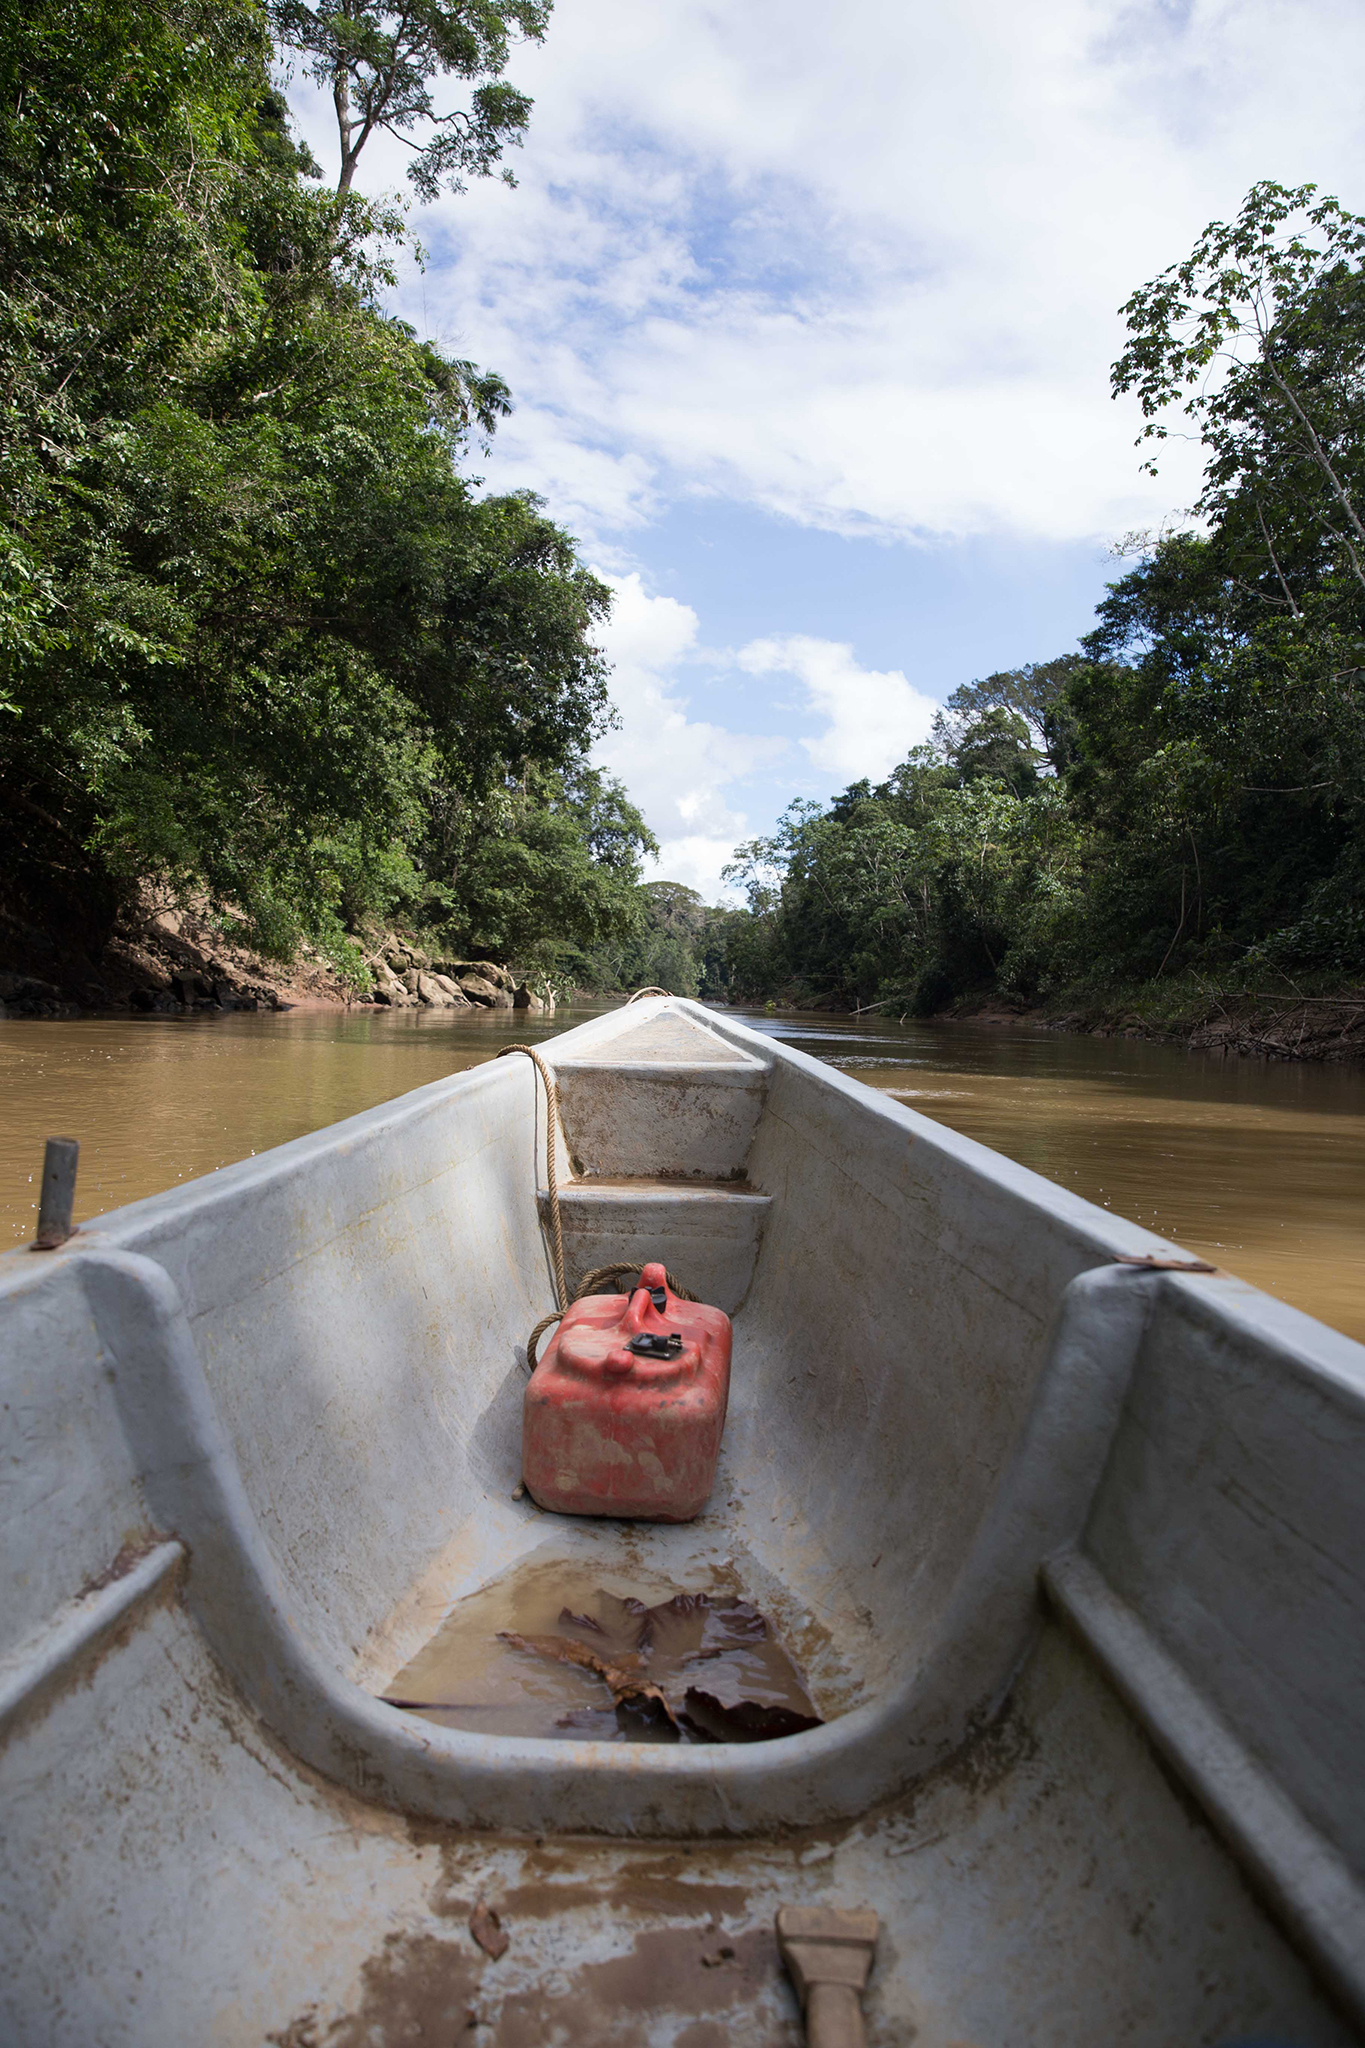 A view from the boat on the Shiripuno River in Yasuní National Park